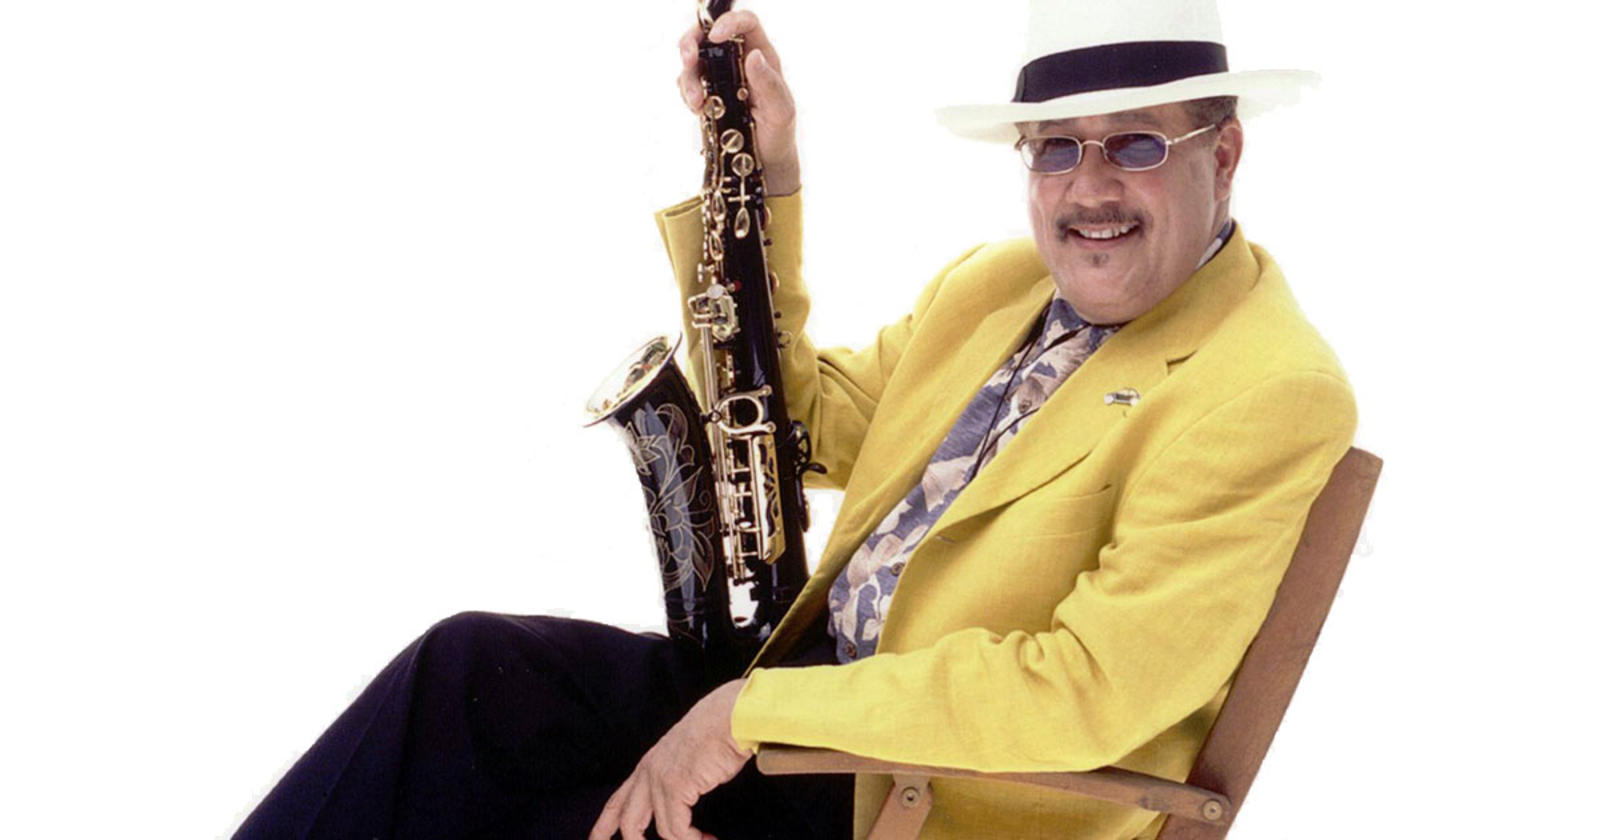 Paquito D'Rivera in Concert at 92Y in New York City